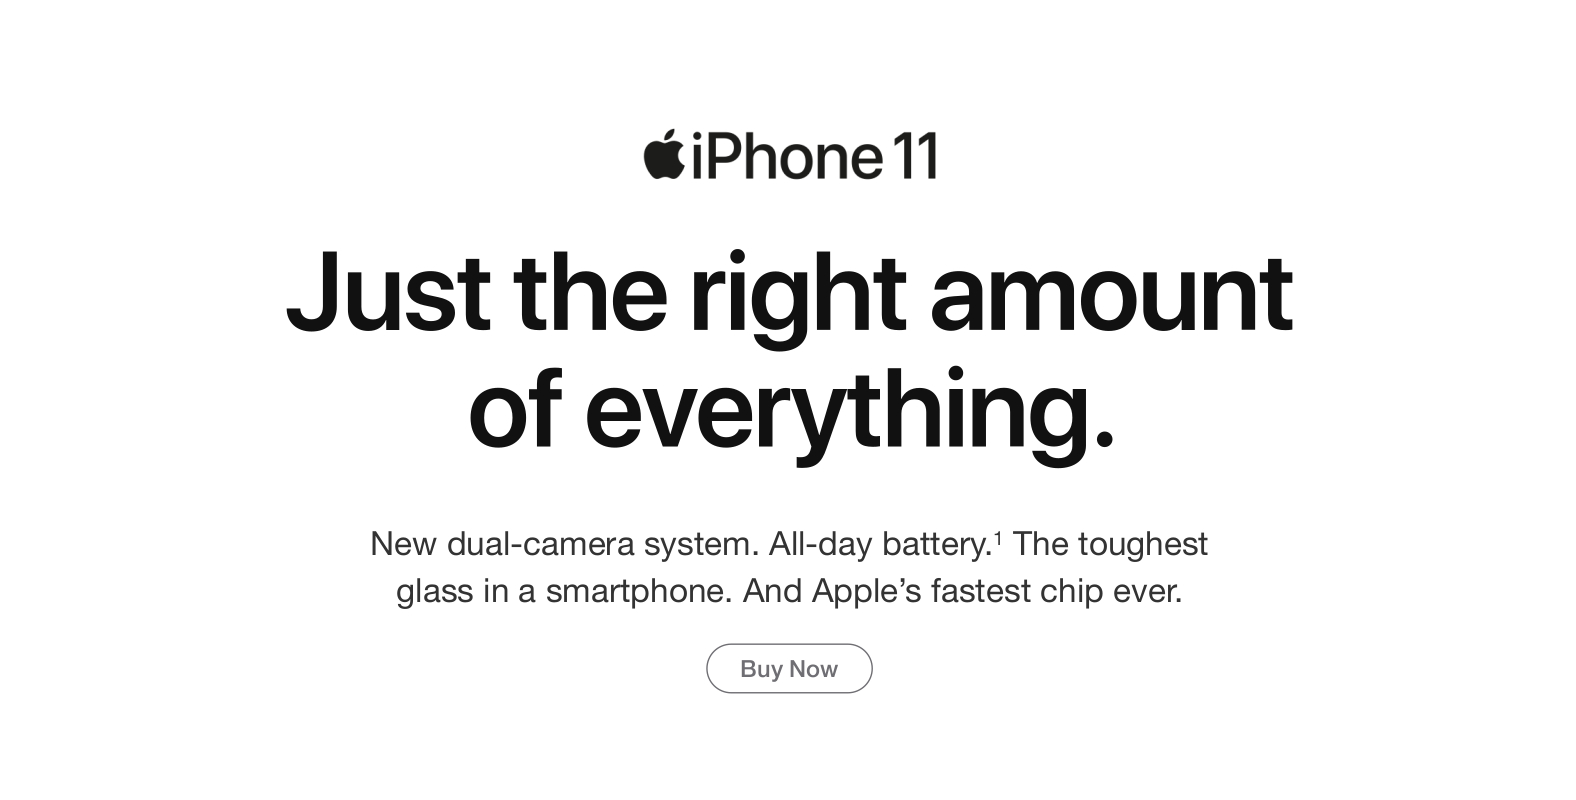 iPhone 11. Just the right amount of everything.